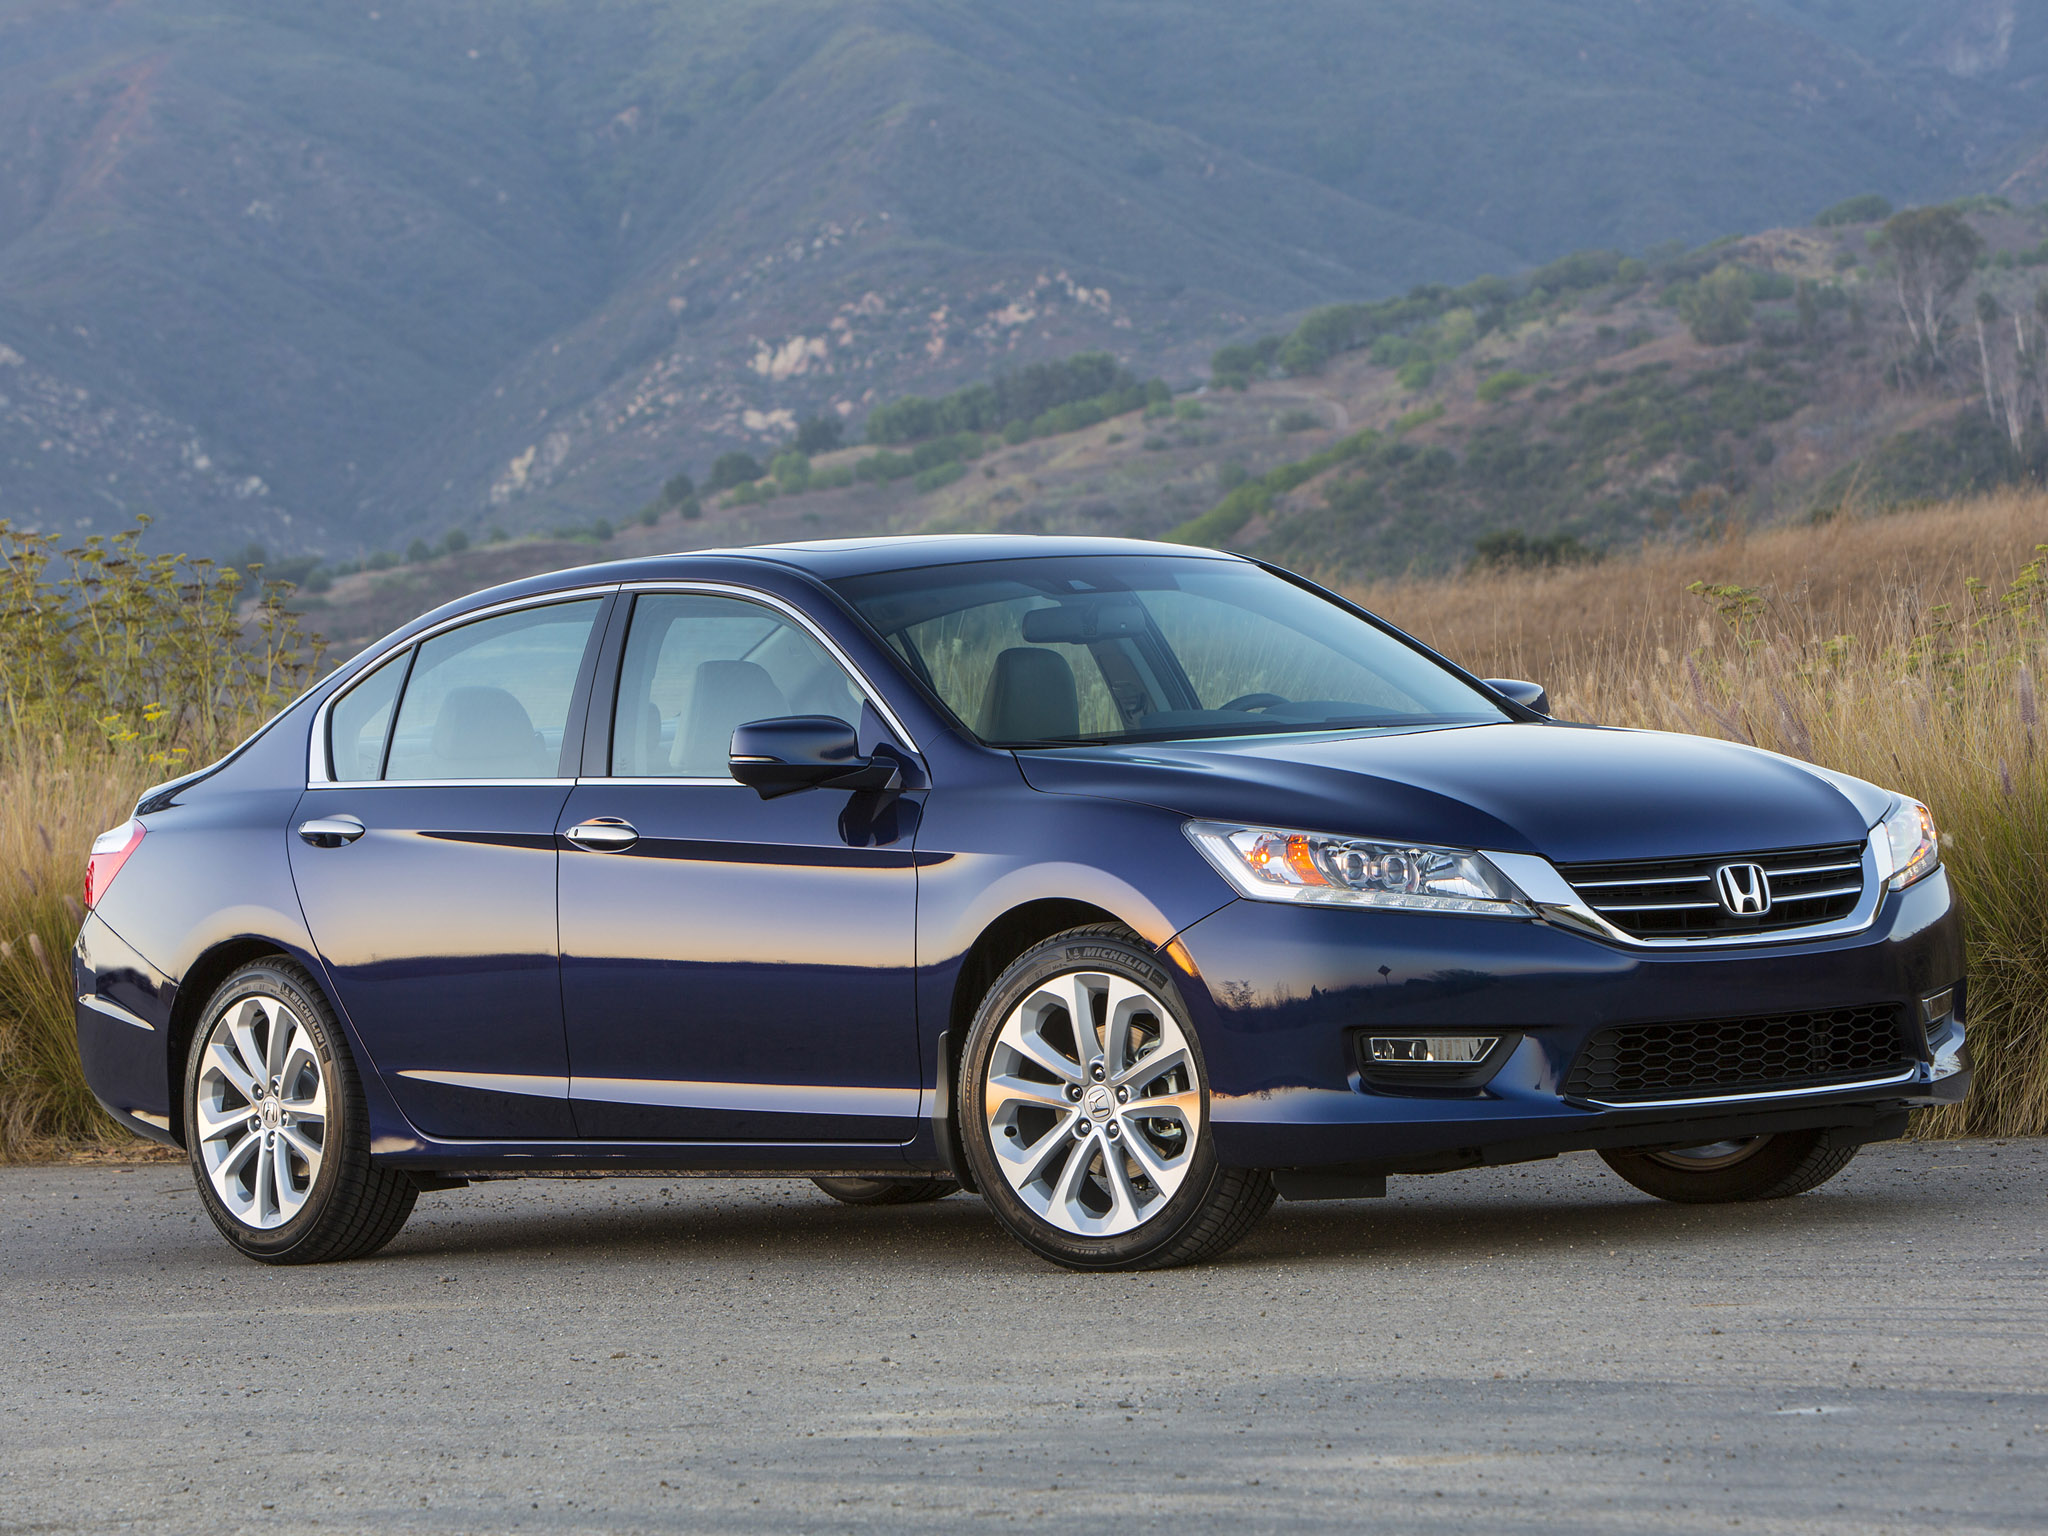 honda accord touring sedan 2013 honda accord touring sedan 2013 photo 06 car in pictures car